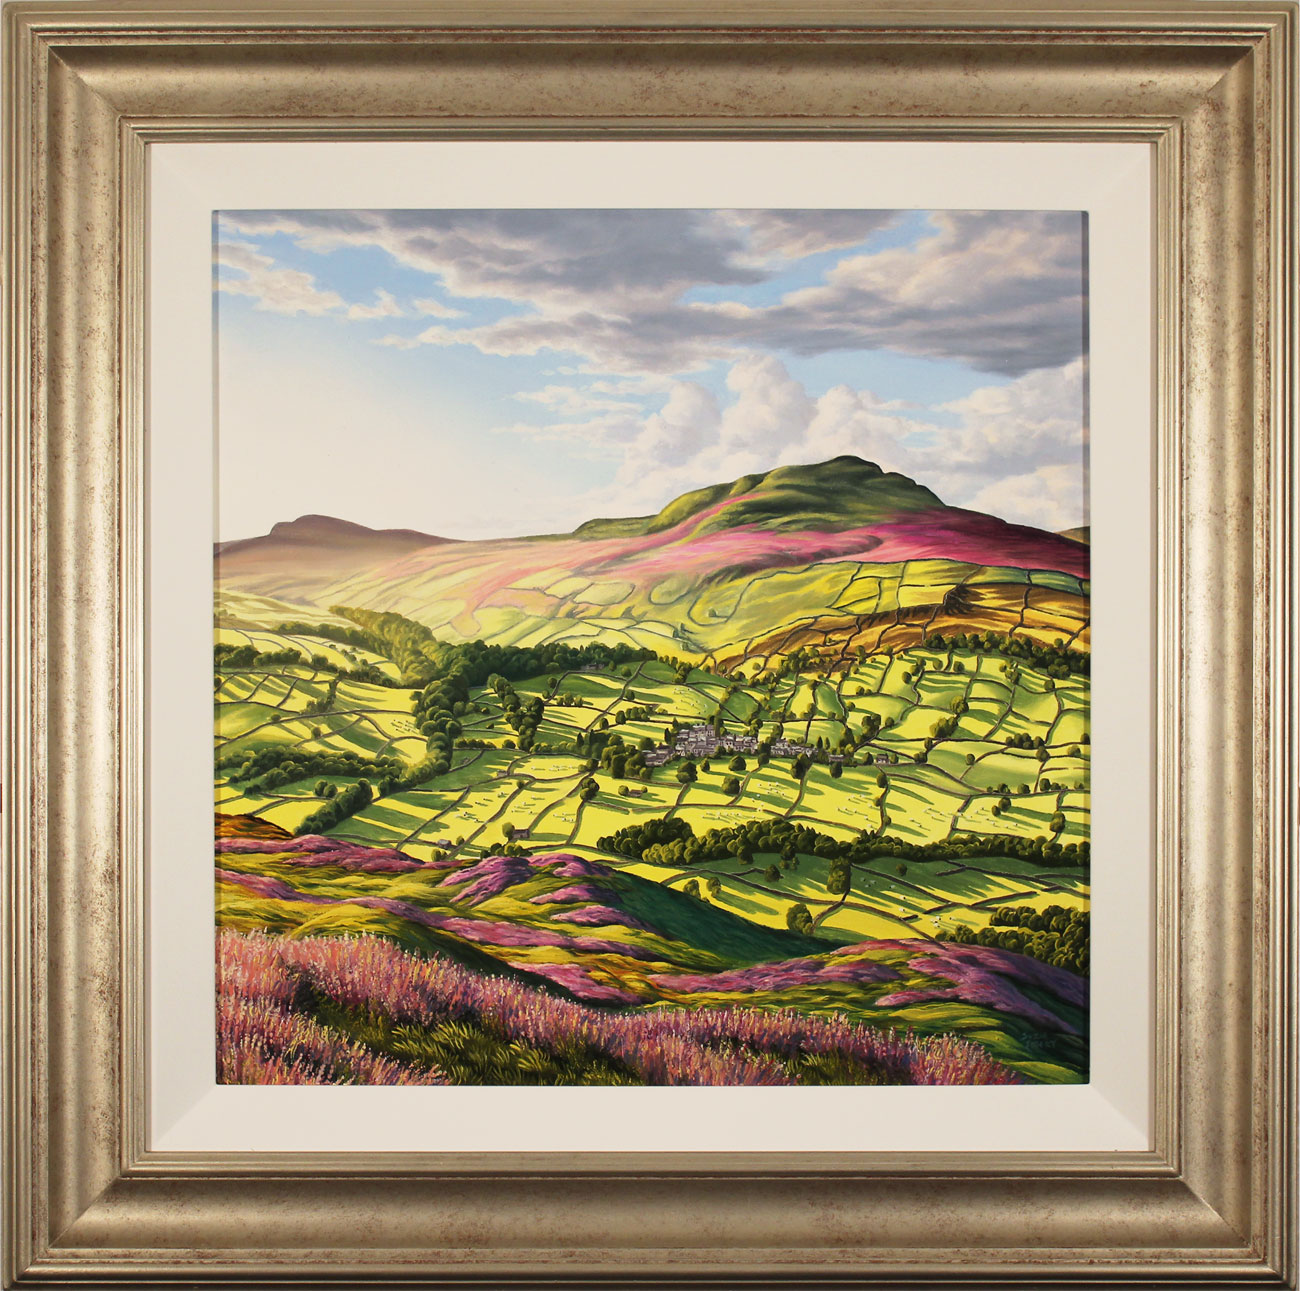 Suzie Emery, Original acrylic painting on board, Yorkshire Glory, click to enlarge